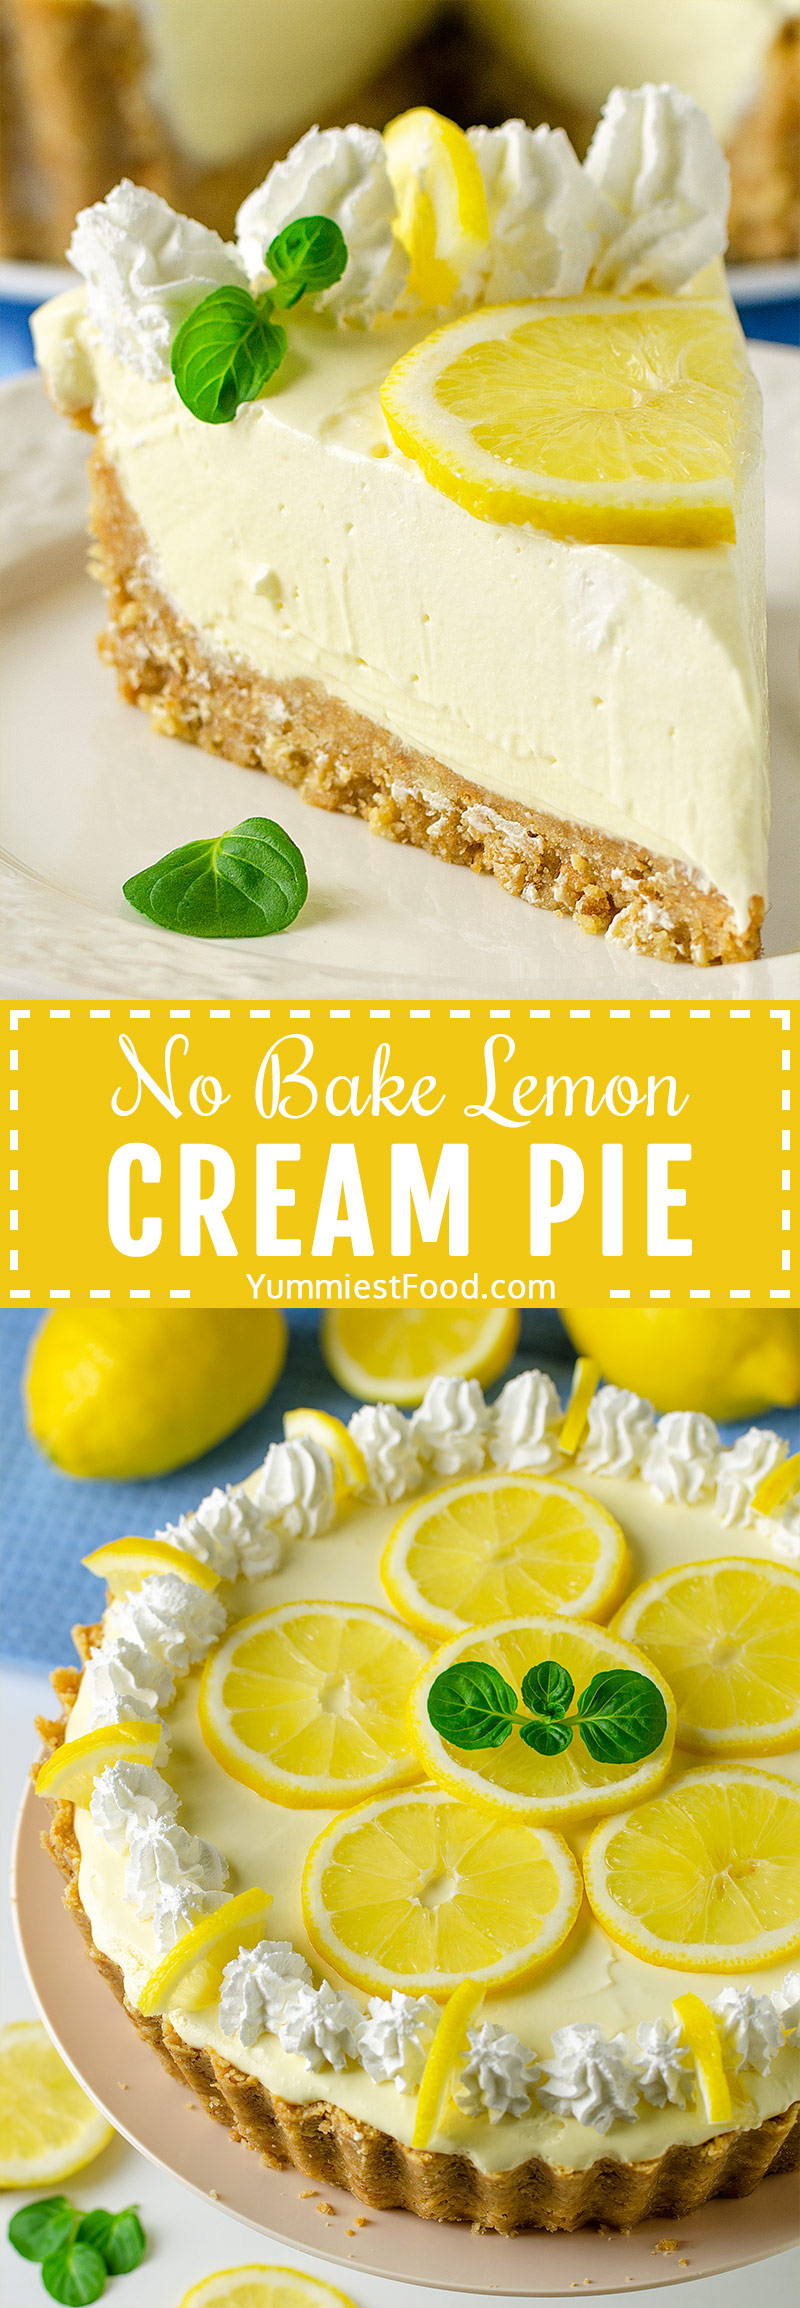 NO BAKE LEMON CREAM PIE – Sweet, tart and easy pie, full of lemon flavor